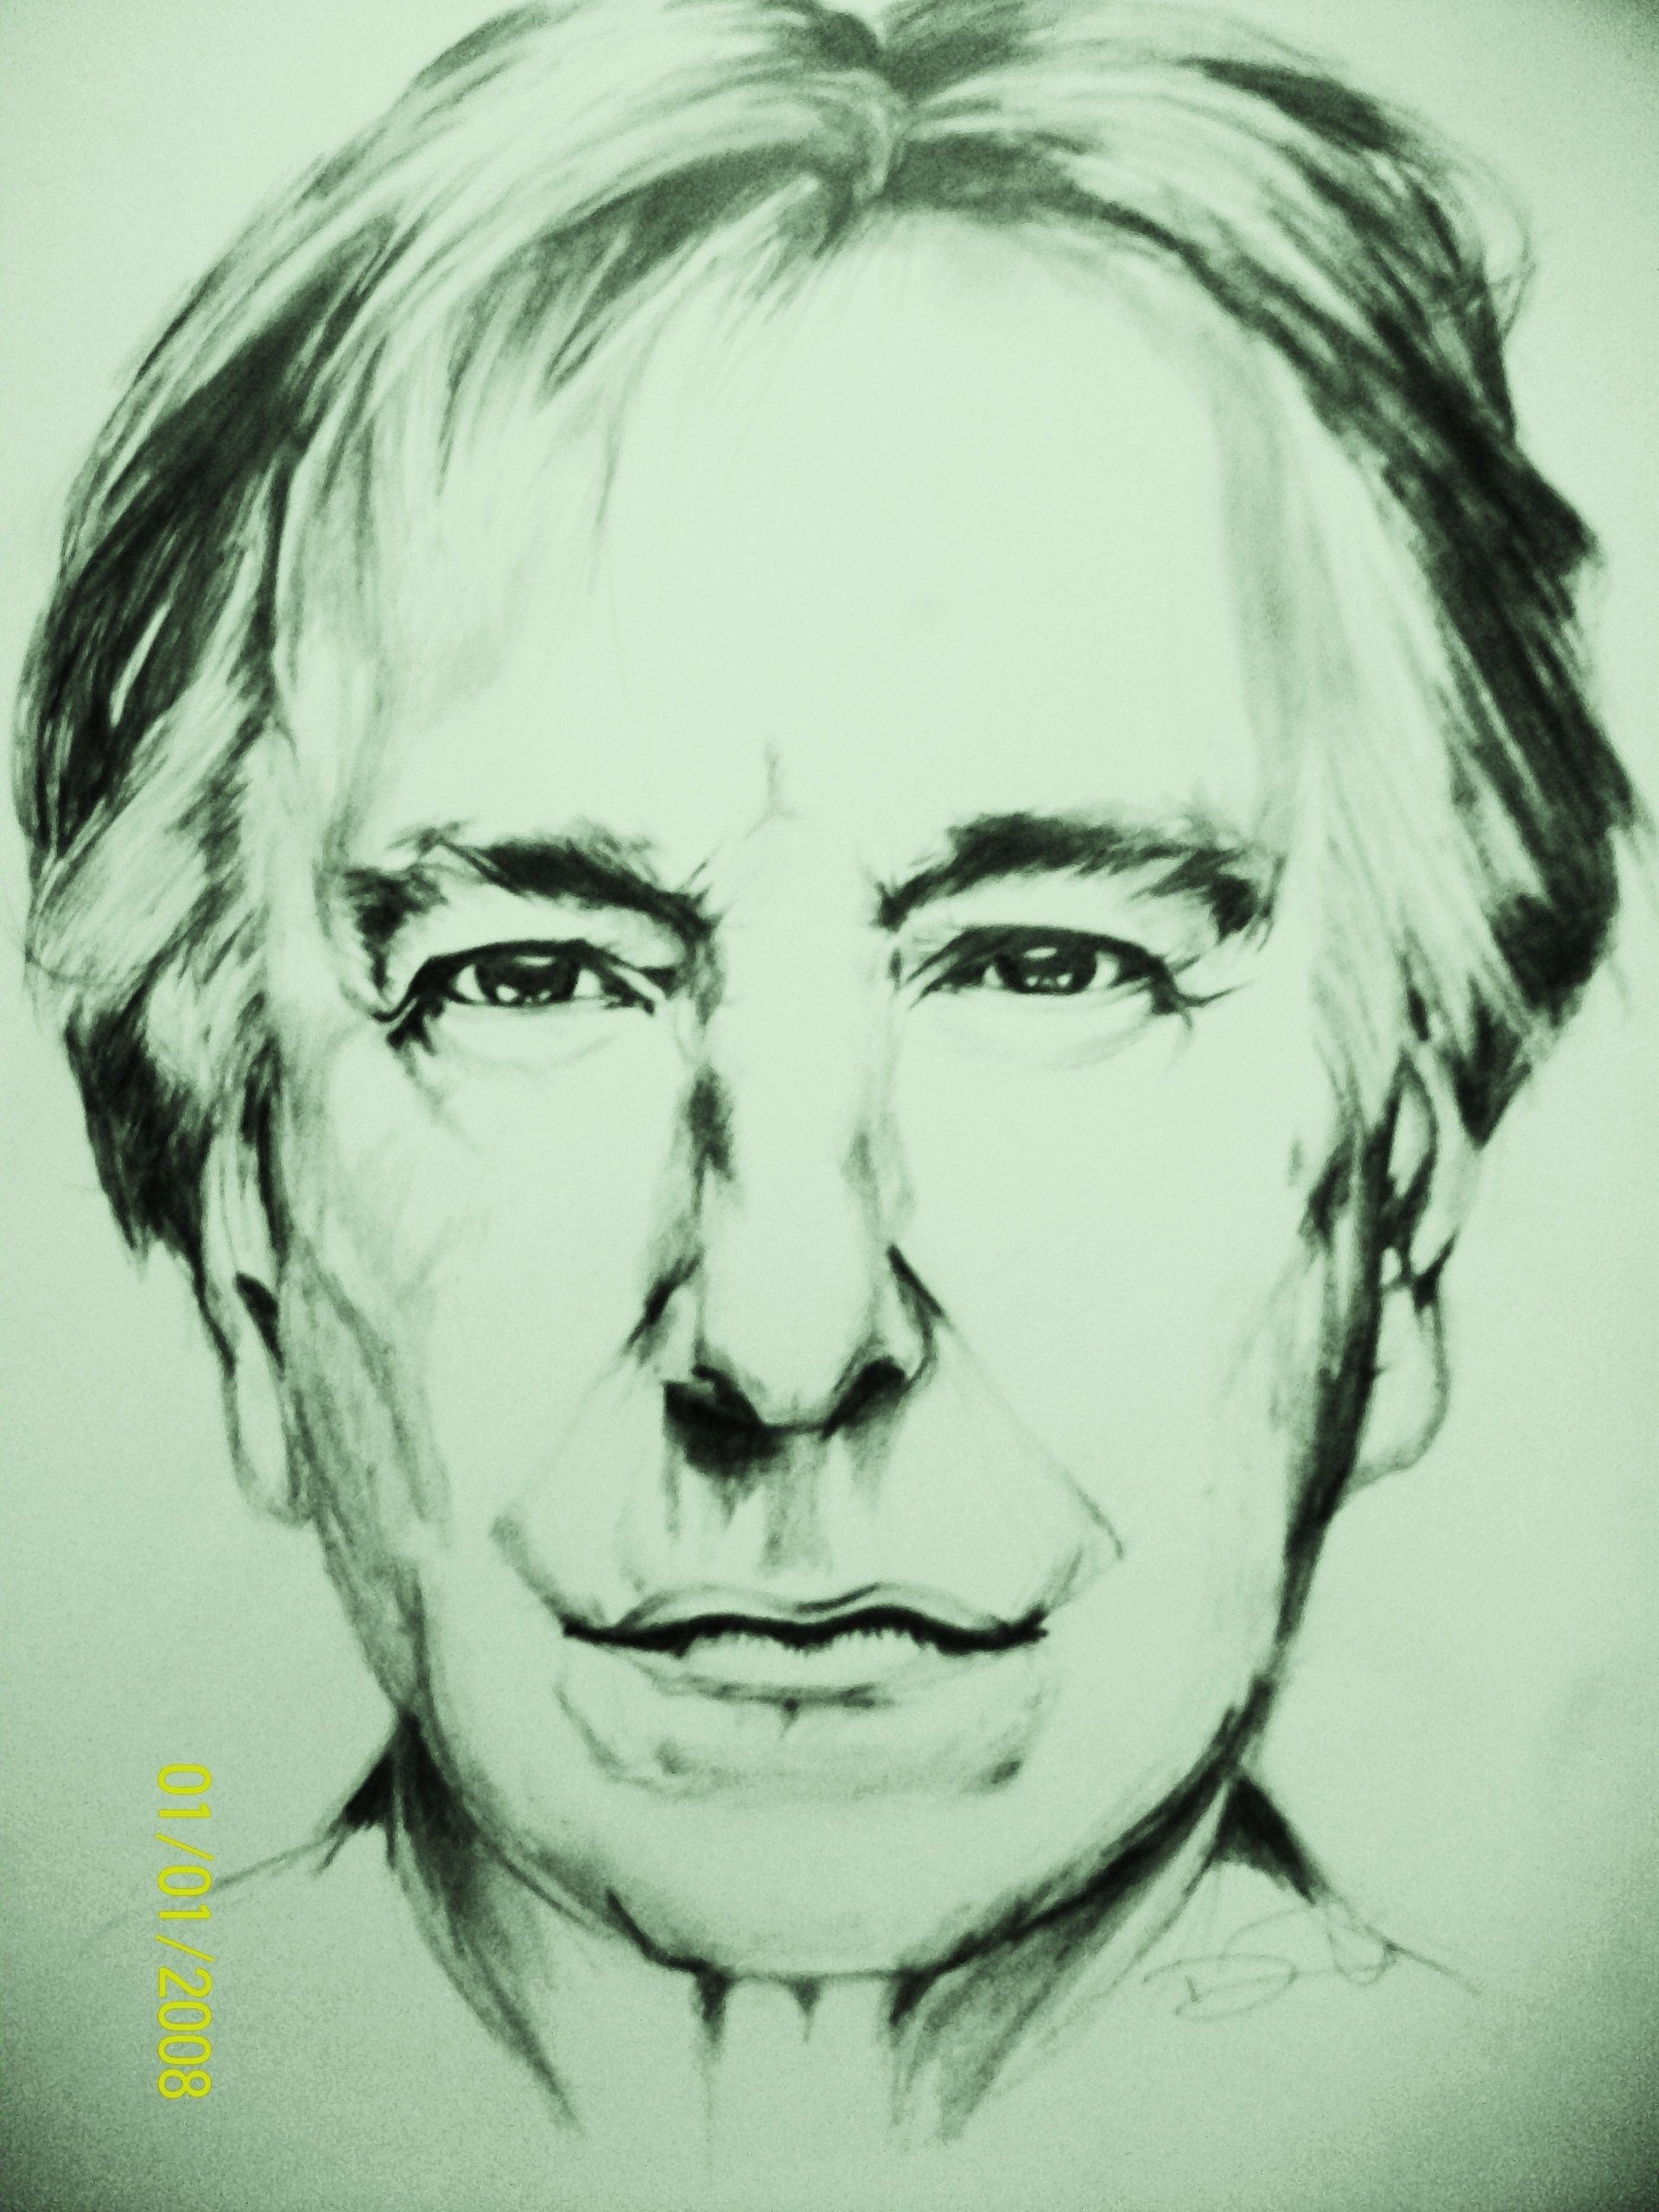 Awesome drawing of Alan Rickman | Art | Pinterest | Awesome ...